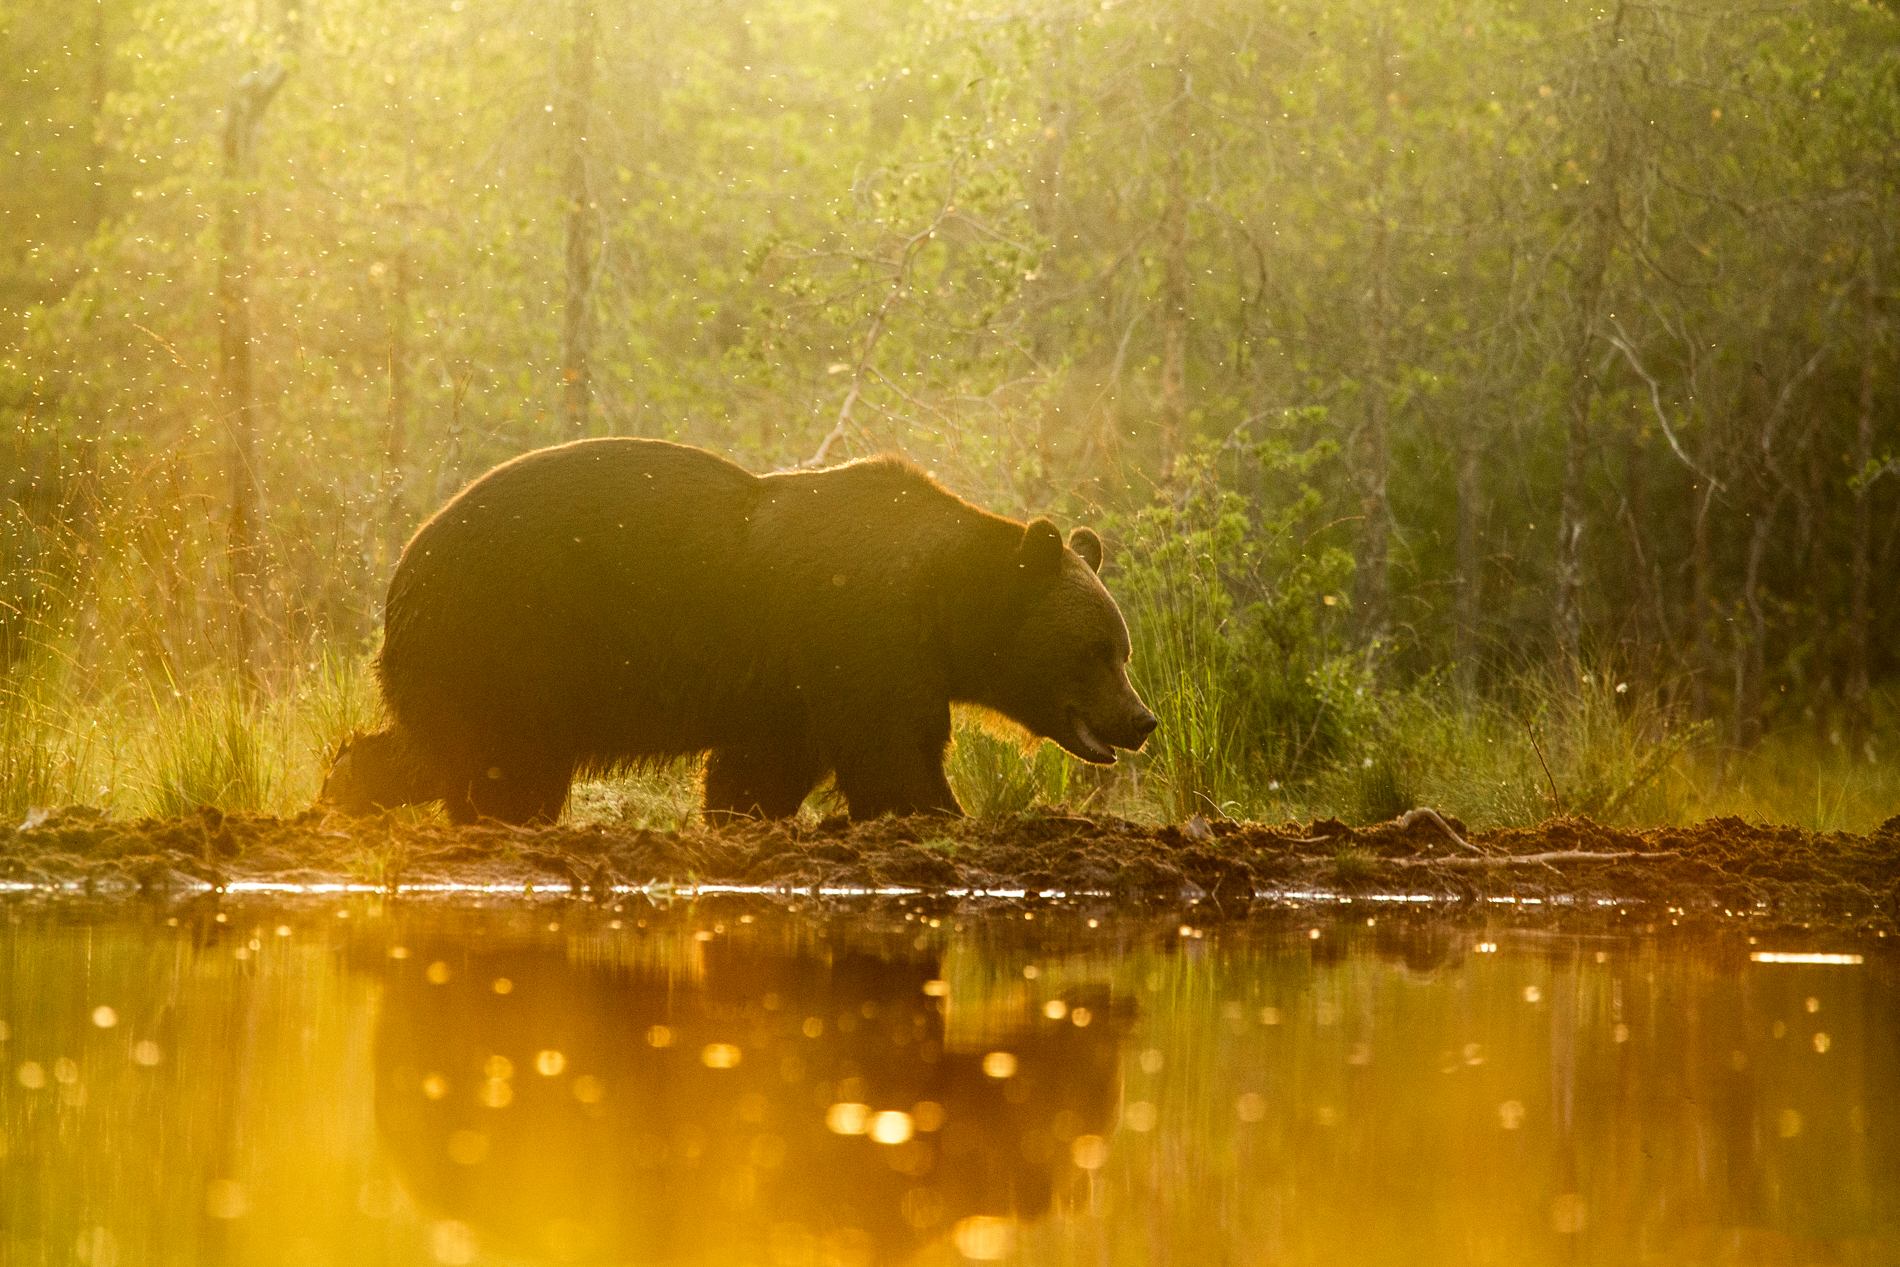 Brown bear reflection in a Finnish water pond in the summer sunset